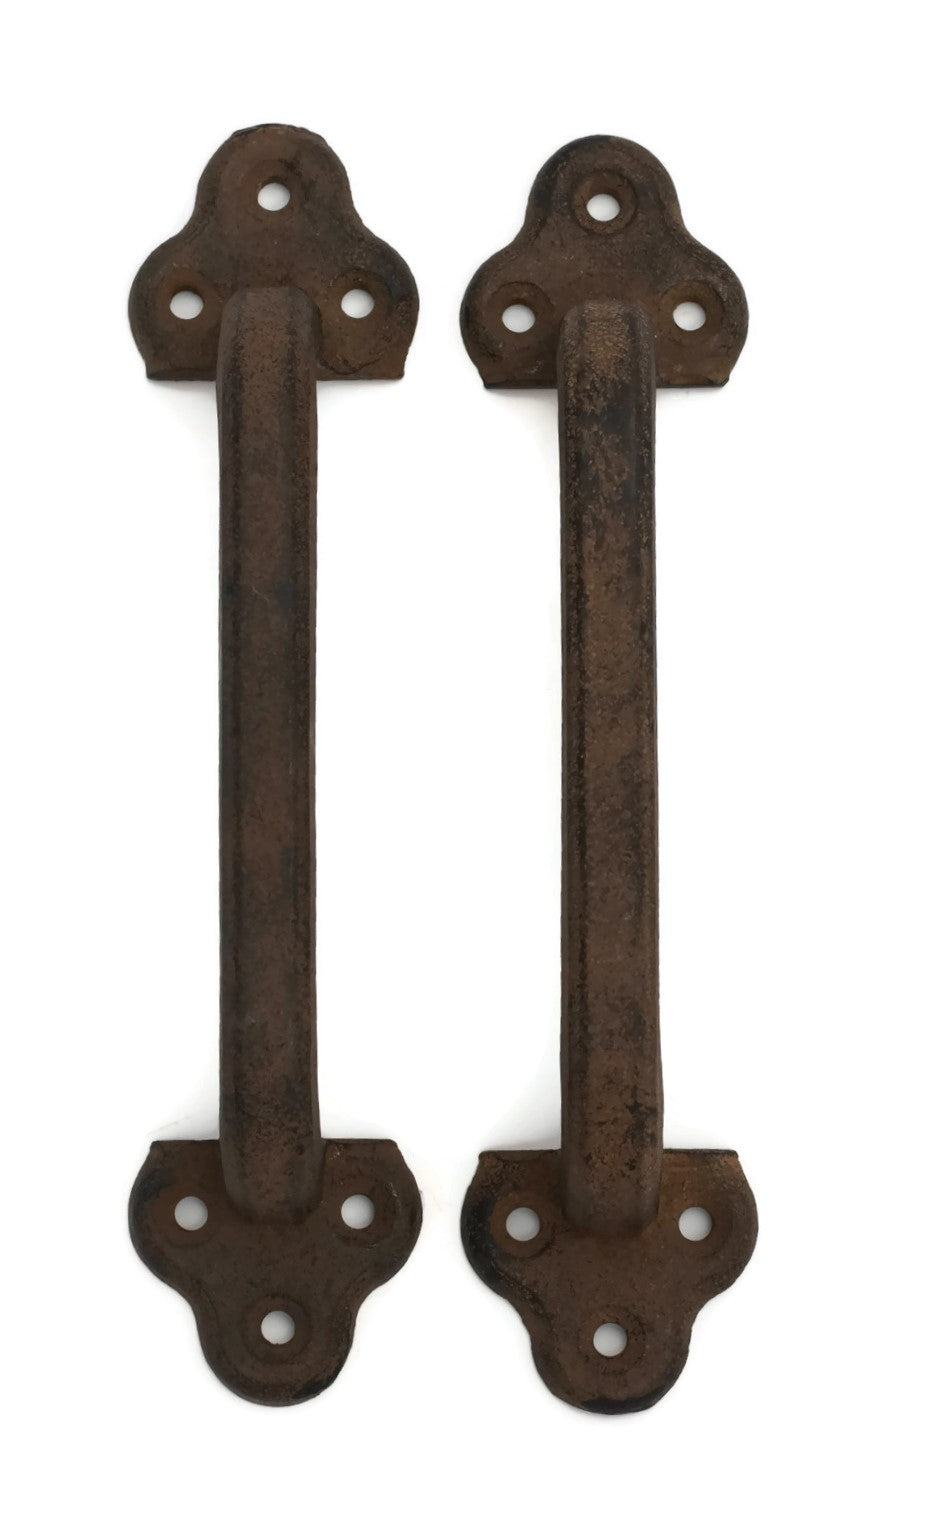 Antique Looking made of Cast Iron Rustic Handle for Barn Door or Gate Pull